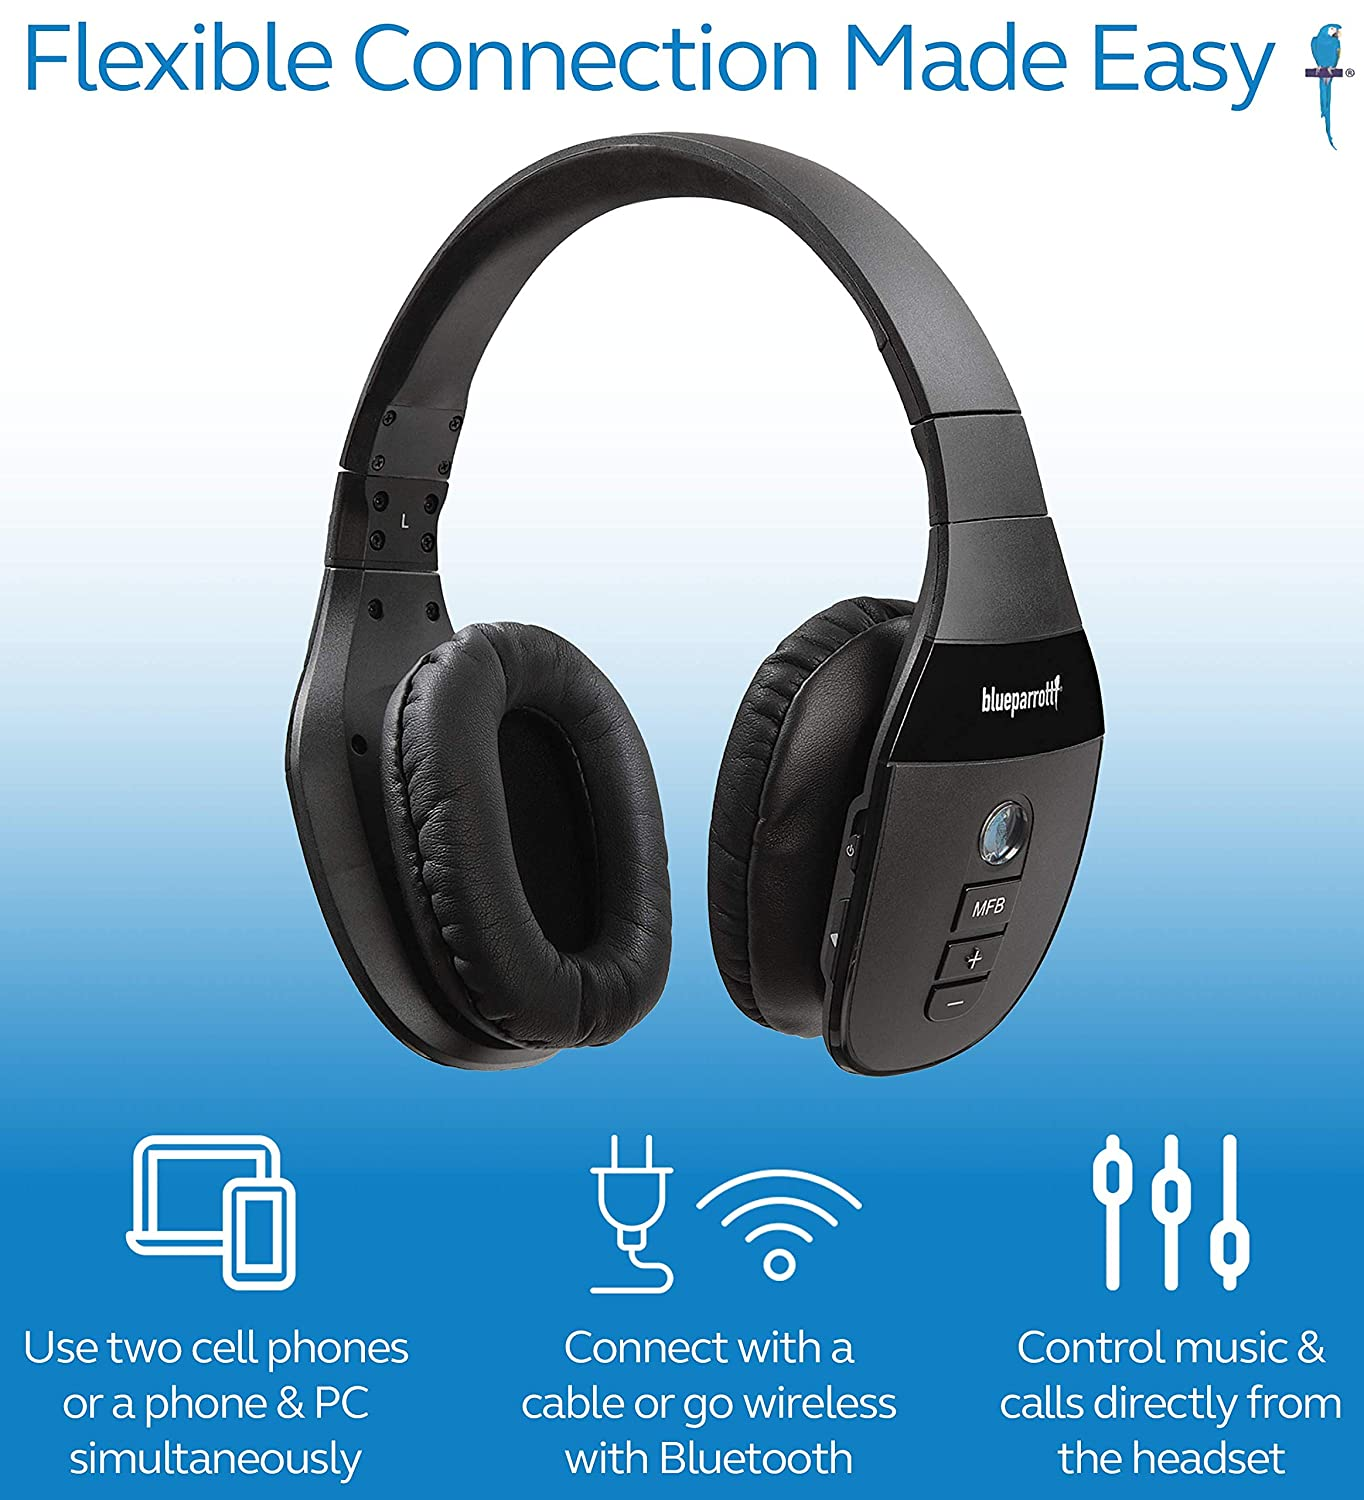 e1748b3c738 Amazon.com: BlueParrott S450-XT Noise Cancelling Bluetooth Headset Bundle  with Blucoil Micro USB Car Charger, Blucoil USB Wall Adapter, and Blucoil  5-Pack ...